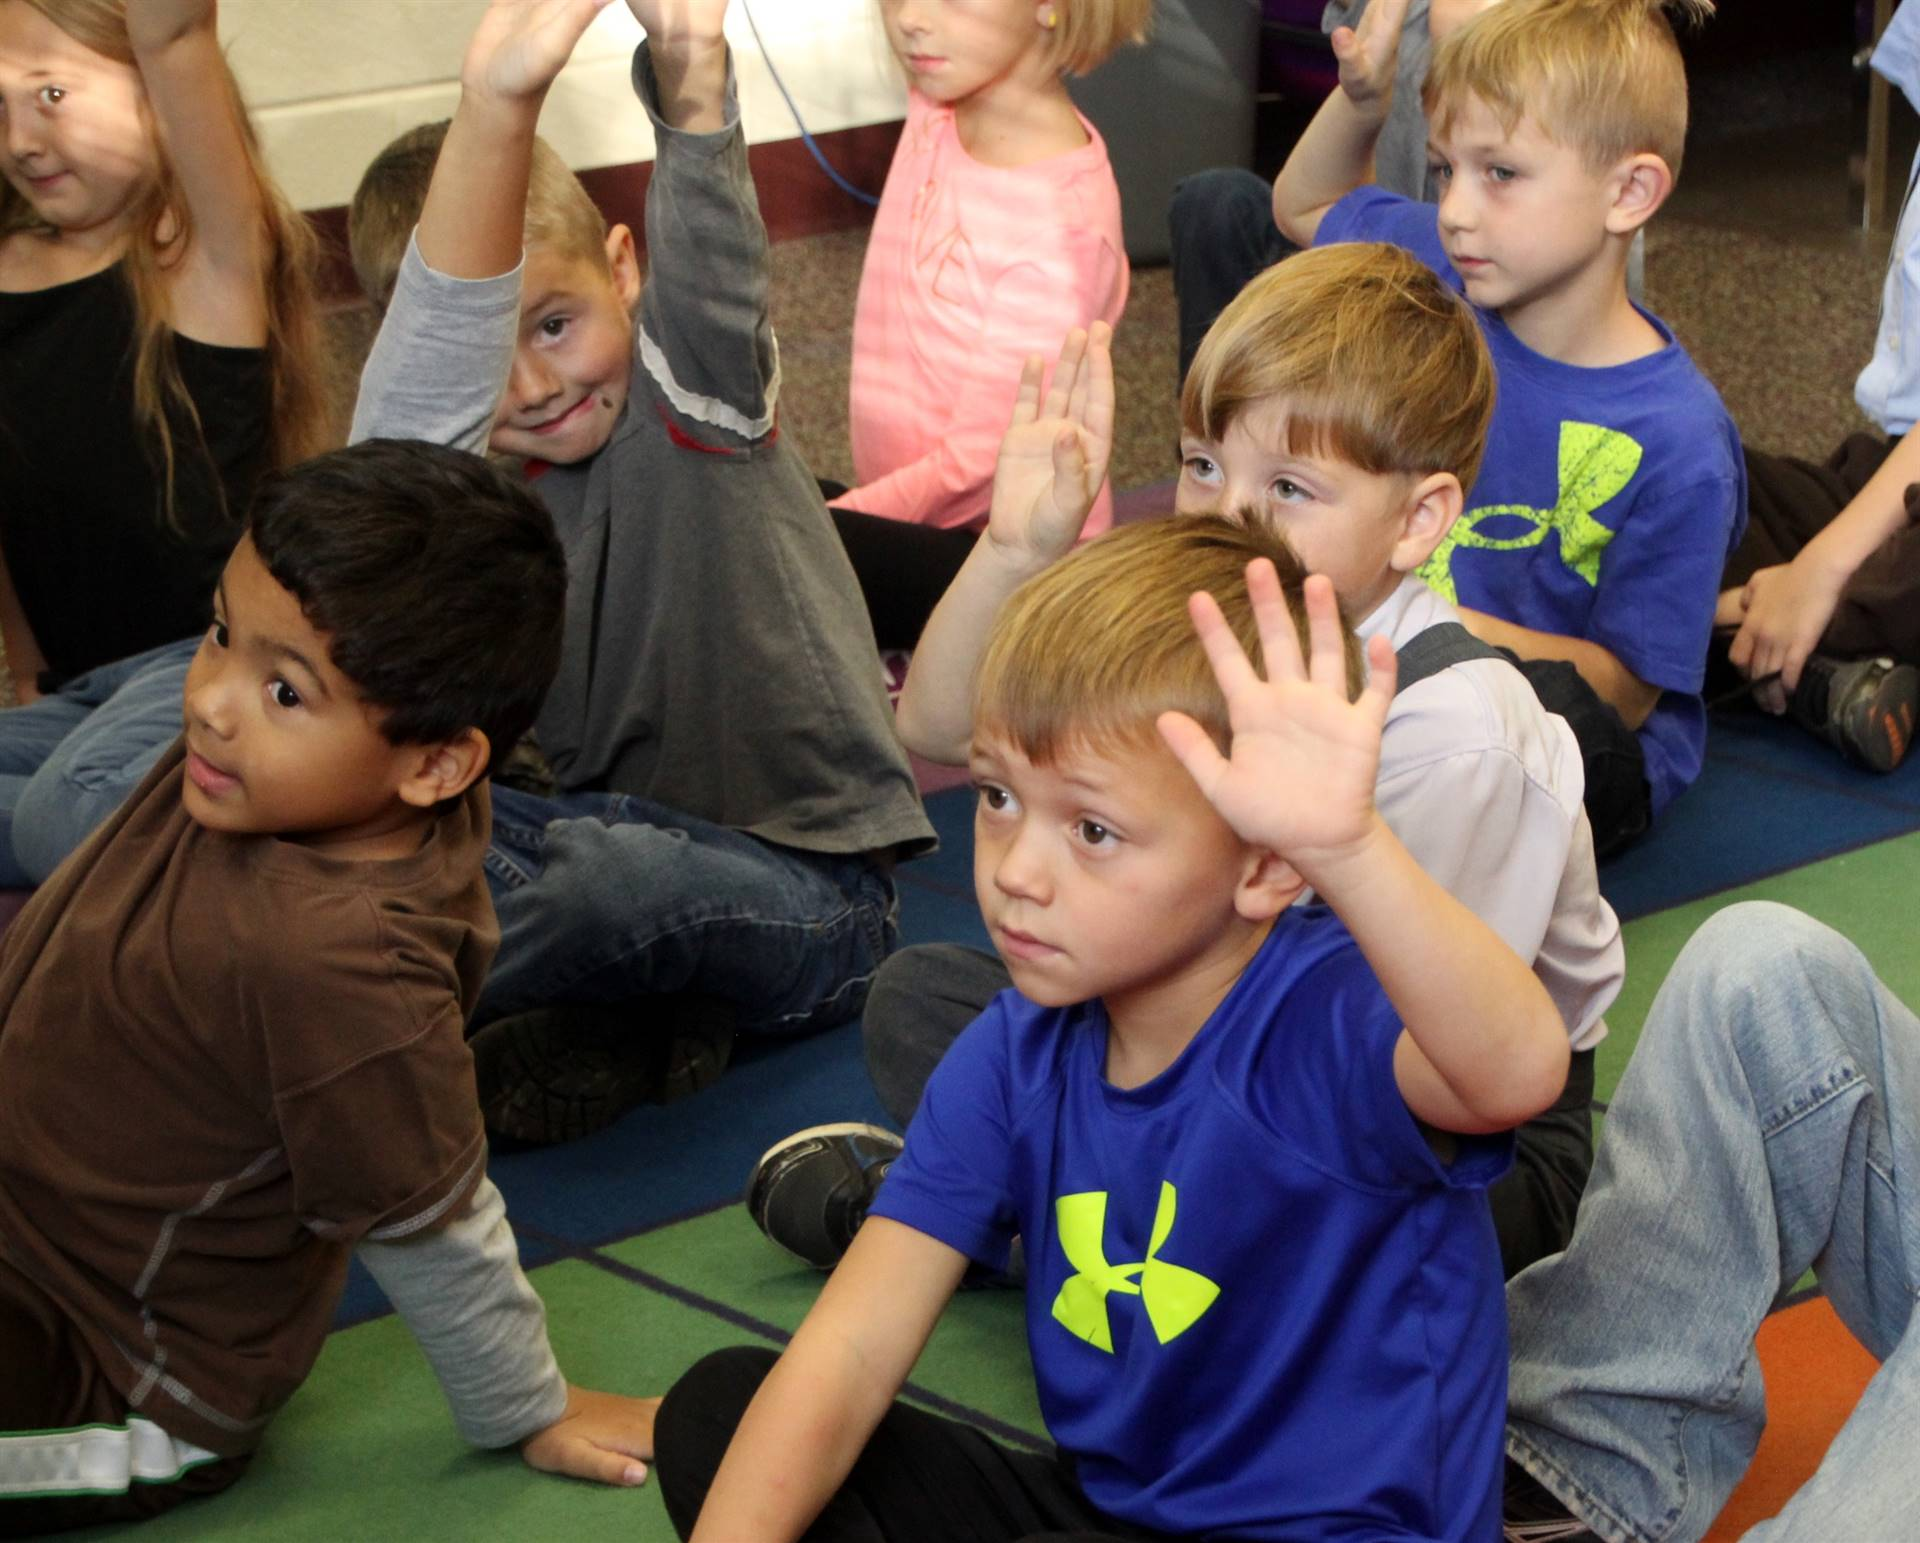 kindergarten kids raising hand